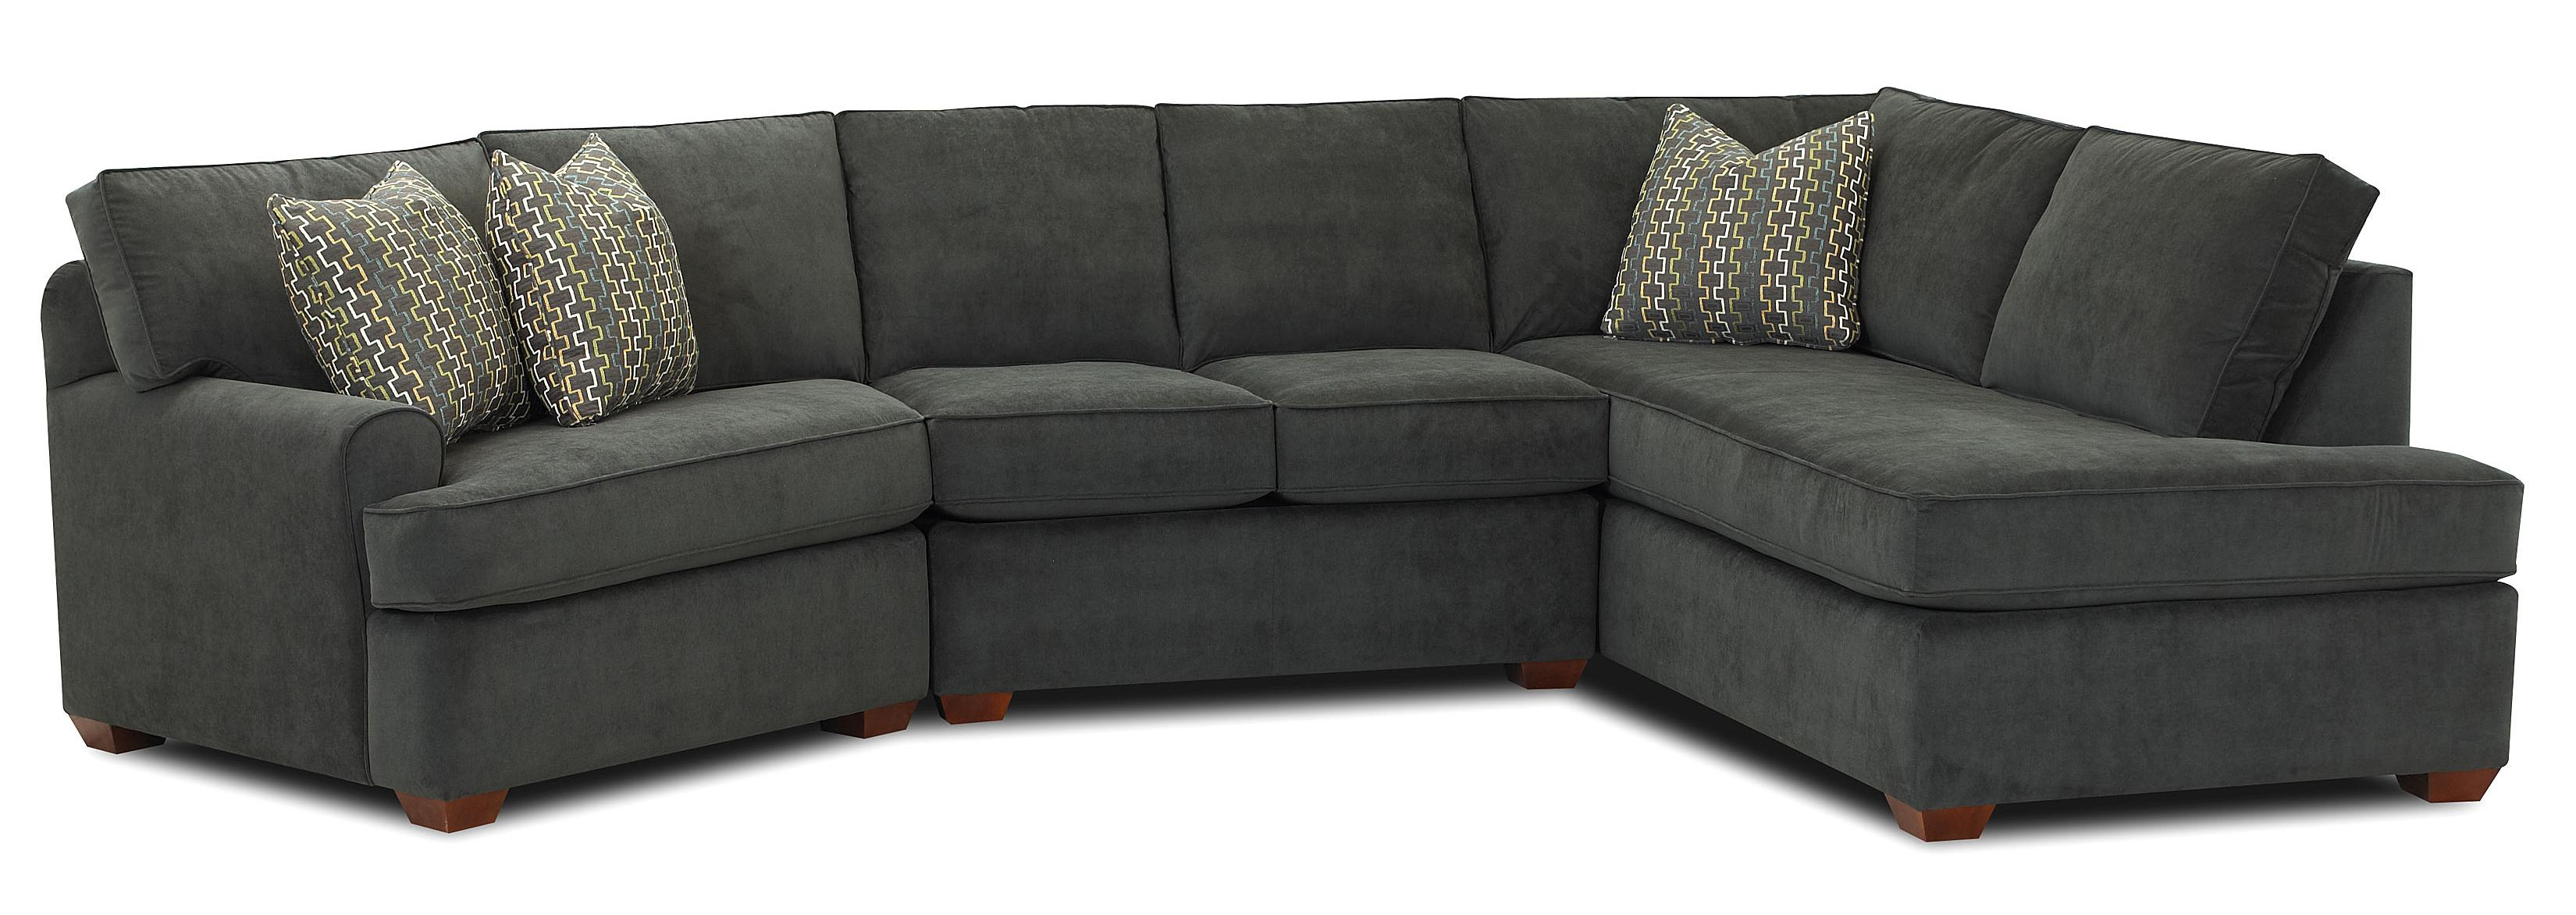 Sectional Sofa with Right-Facing Sofa Chaise by Klaussner ...